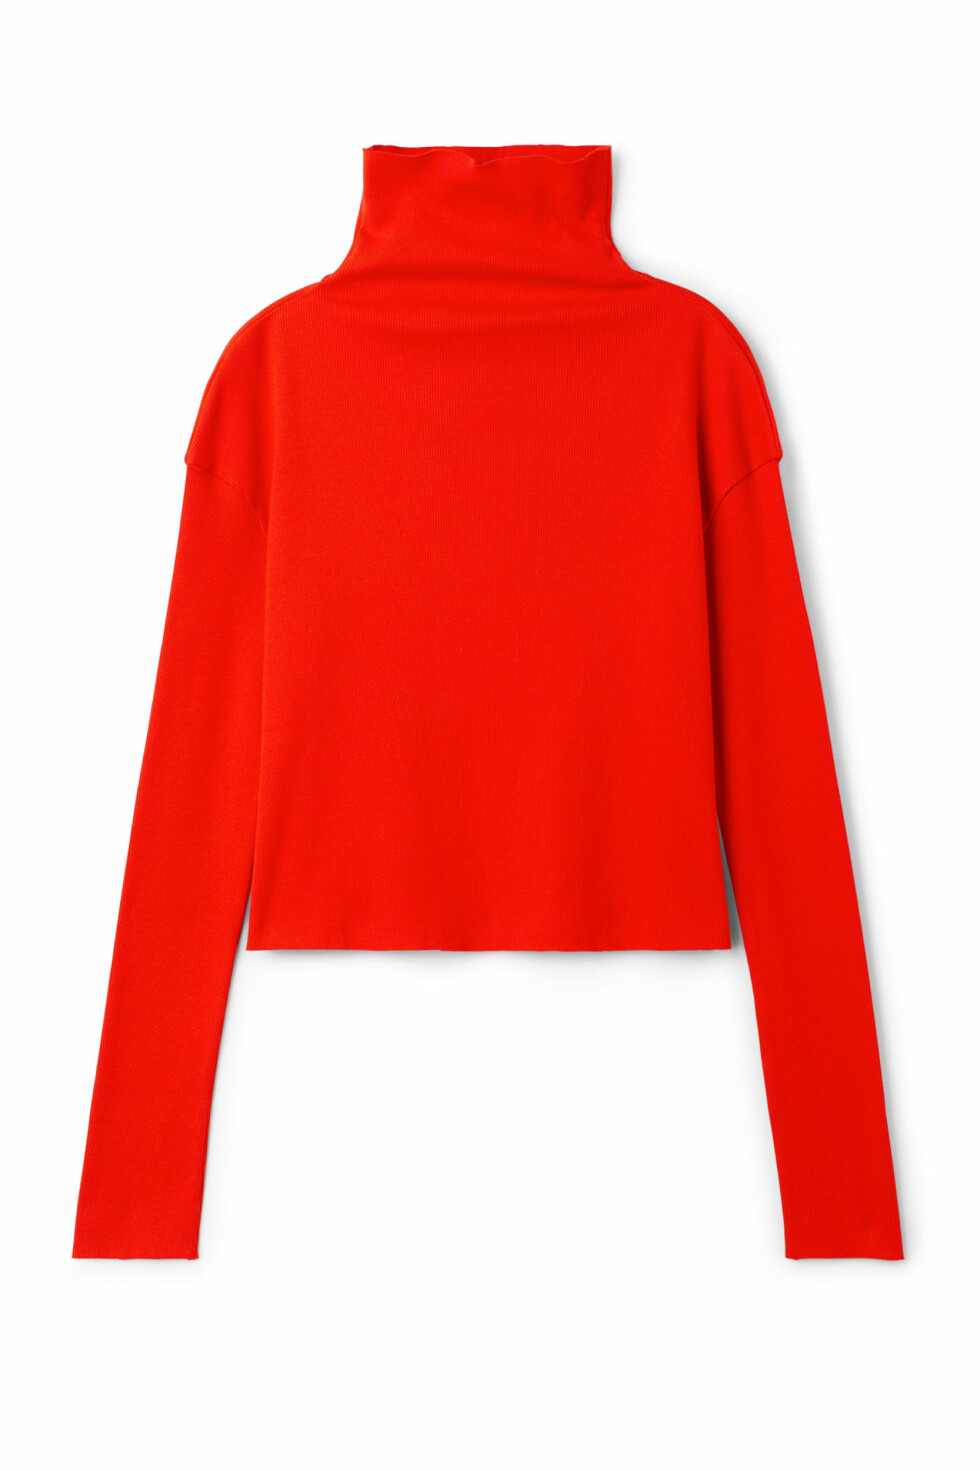 Topp fra Weekday |200,-| https://www.weekday.com/en_sek/women/get-the-latest/new-arrivals/_jcr_content/subdepartmentPar/productlisting_86054396.products/product.philippa-long-sleeve-t-shirt-red.0553743008.html